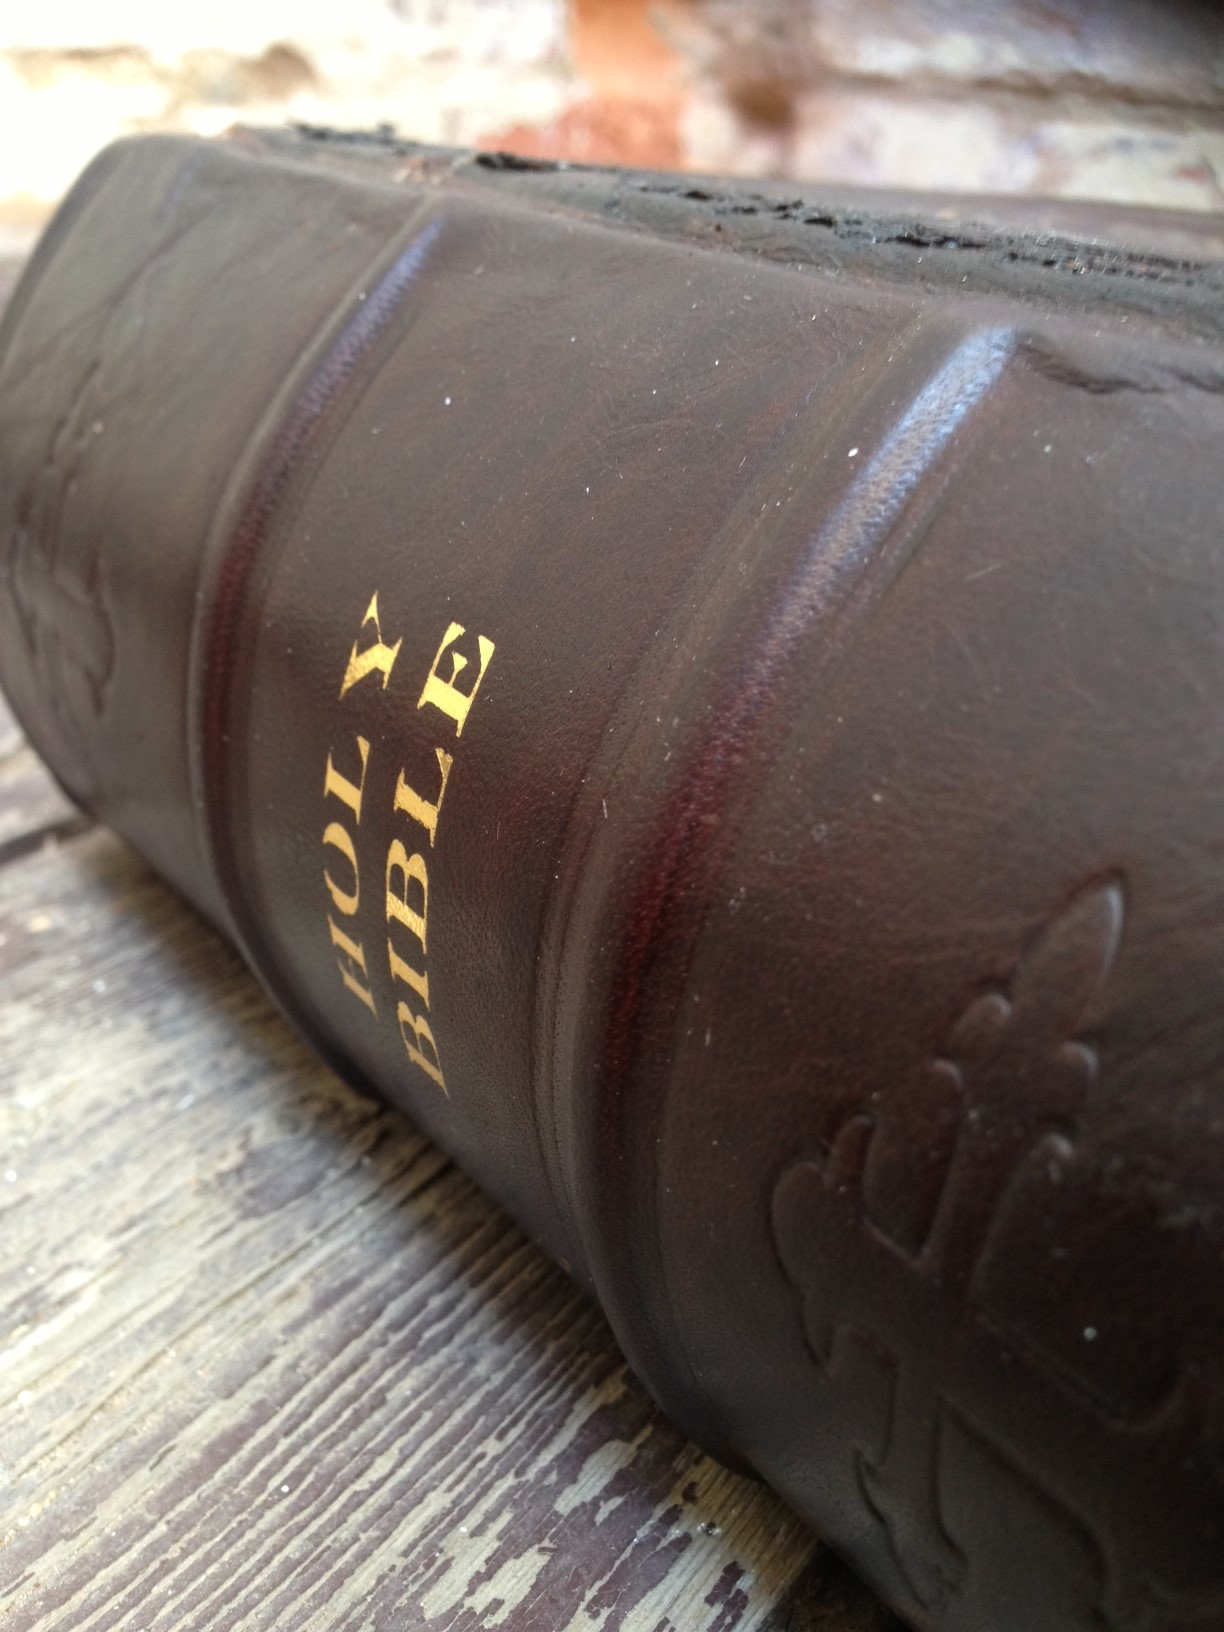 New Spine on Bible Restoration